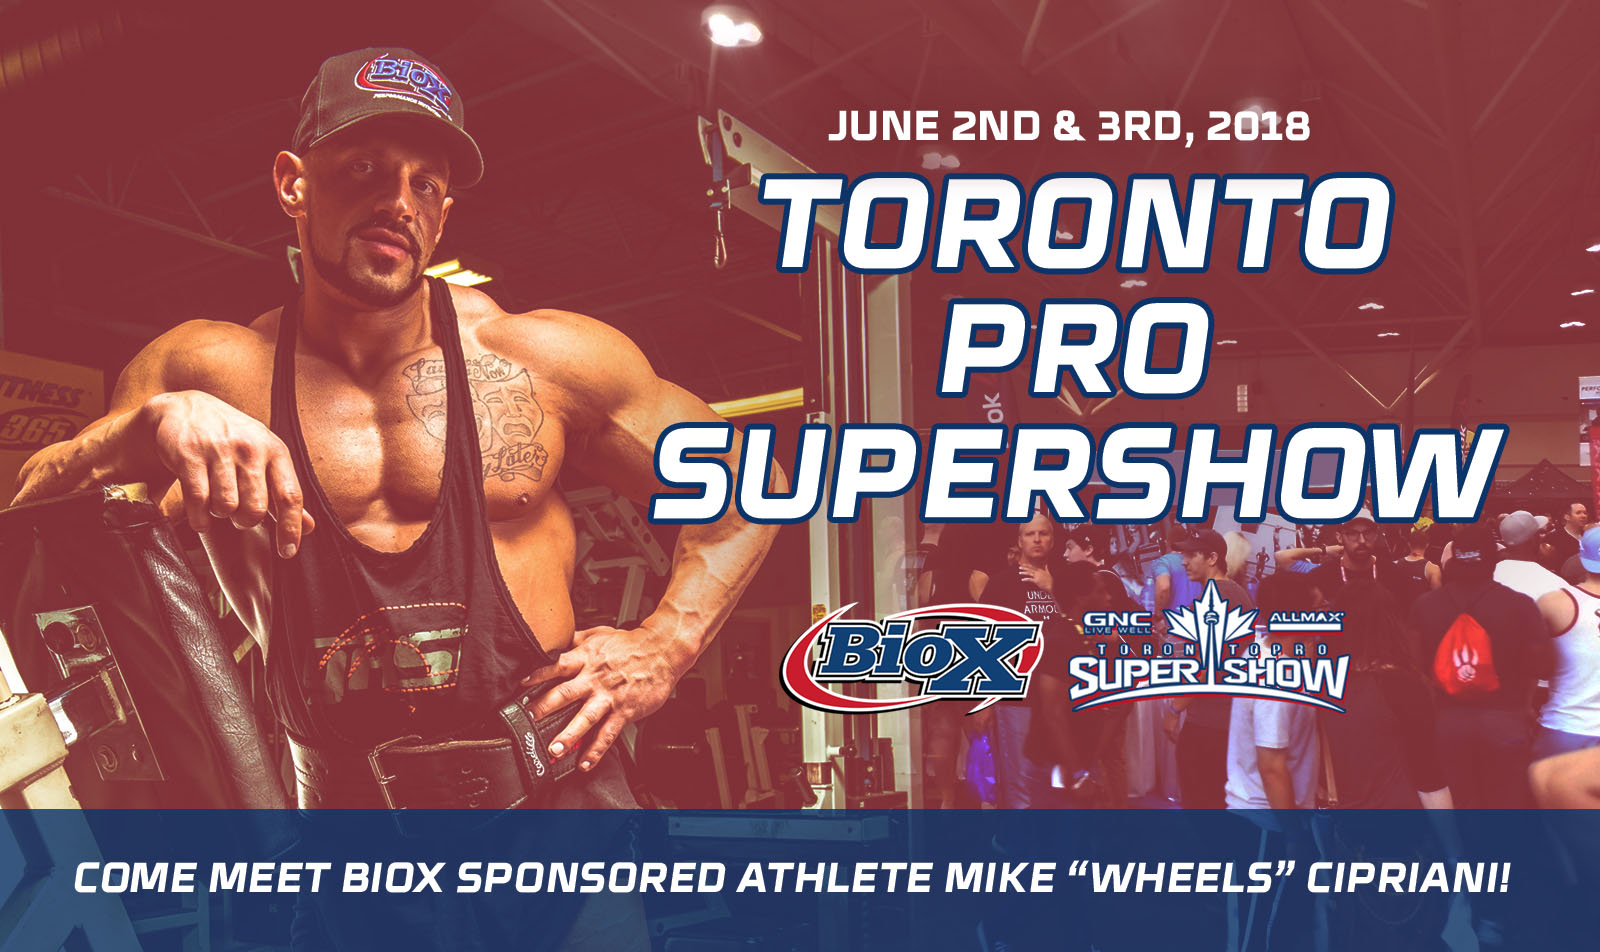 BioX at the Toronto Pro Supershow this weekend